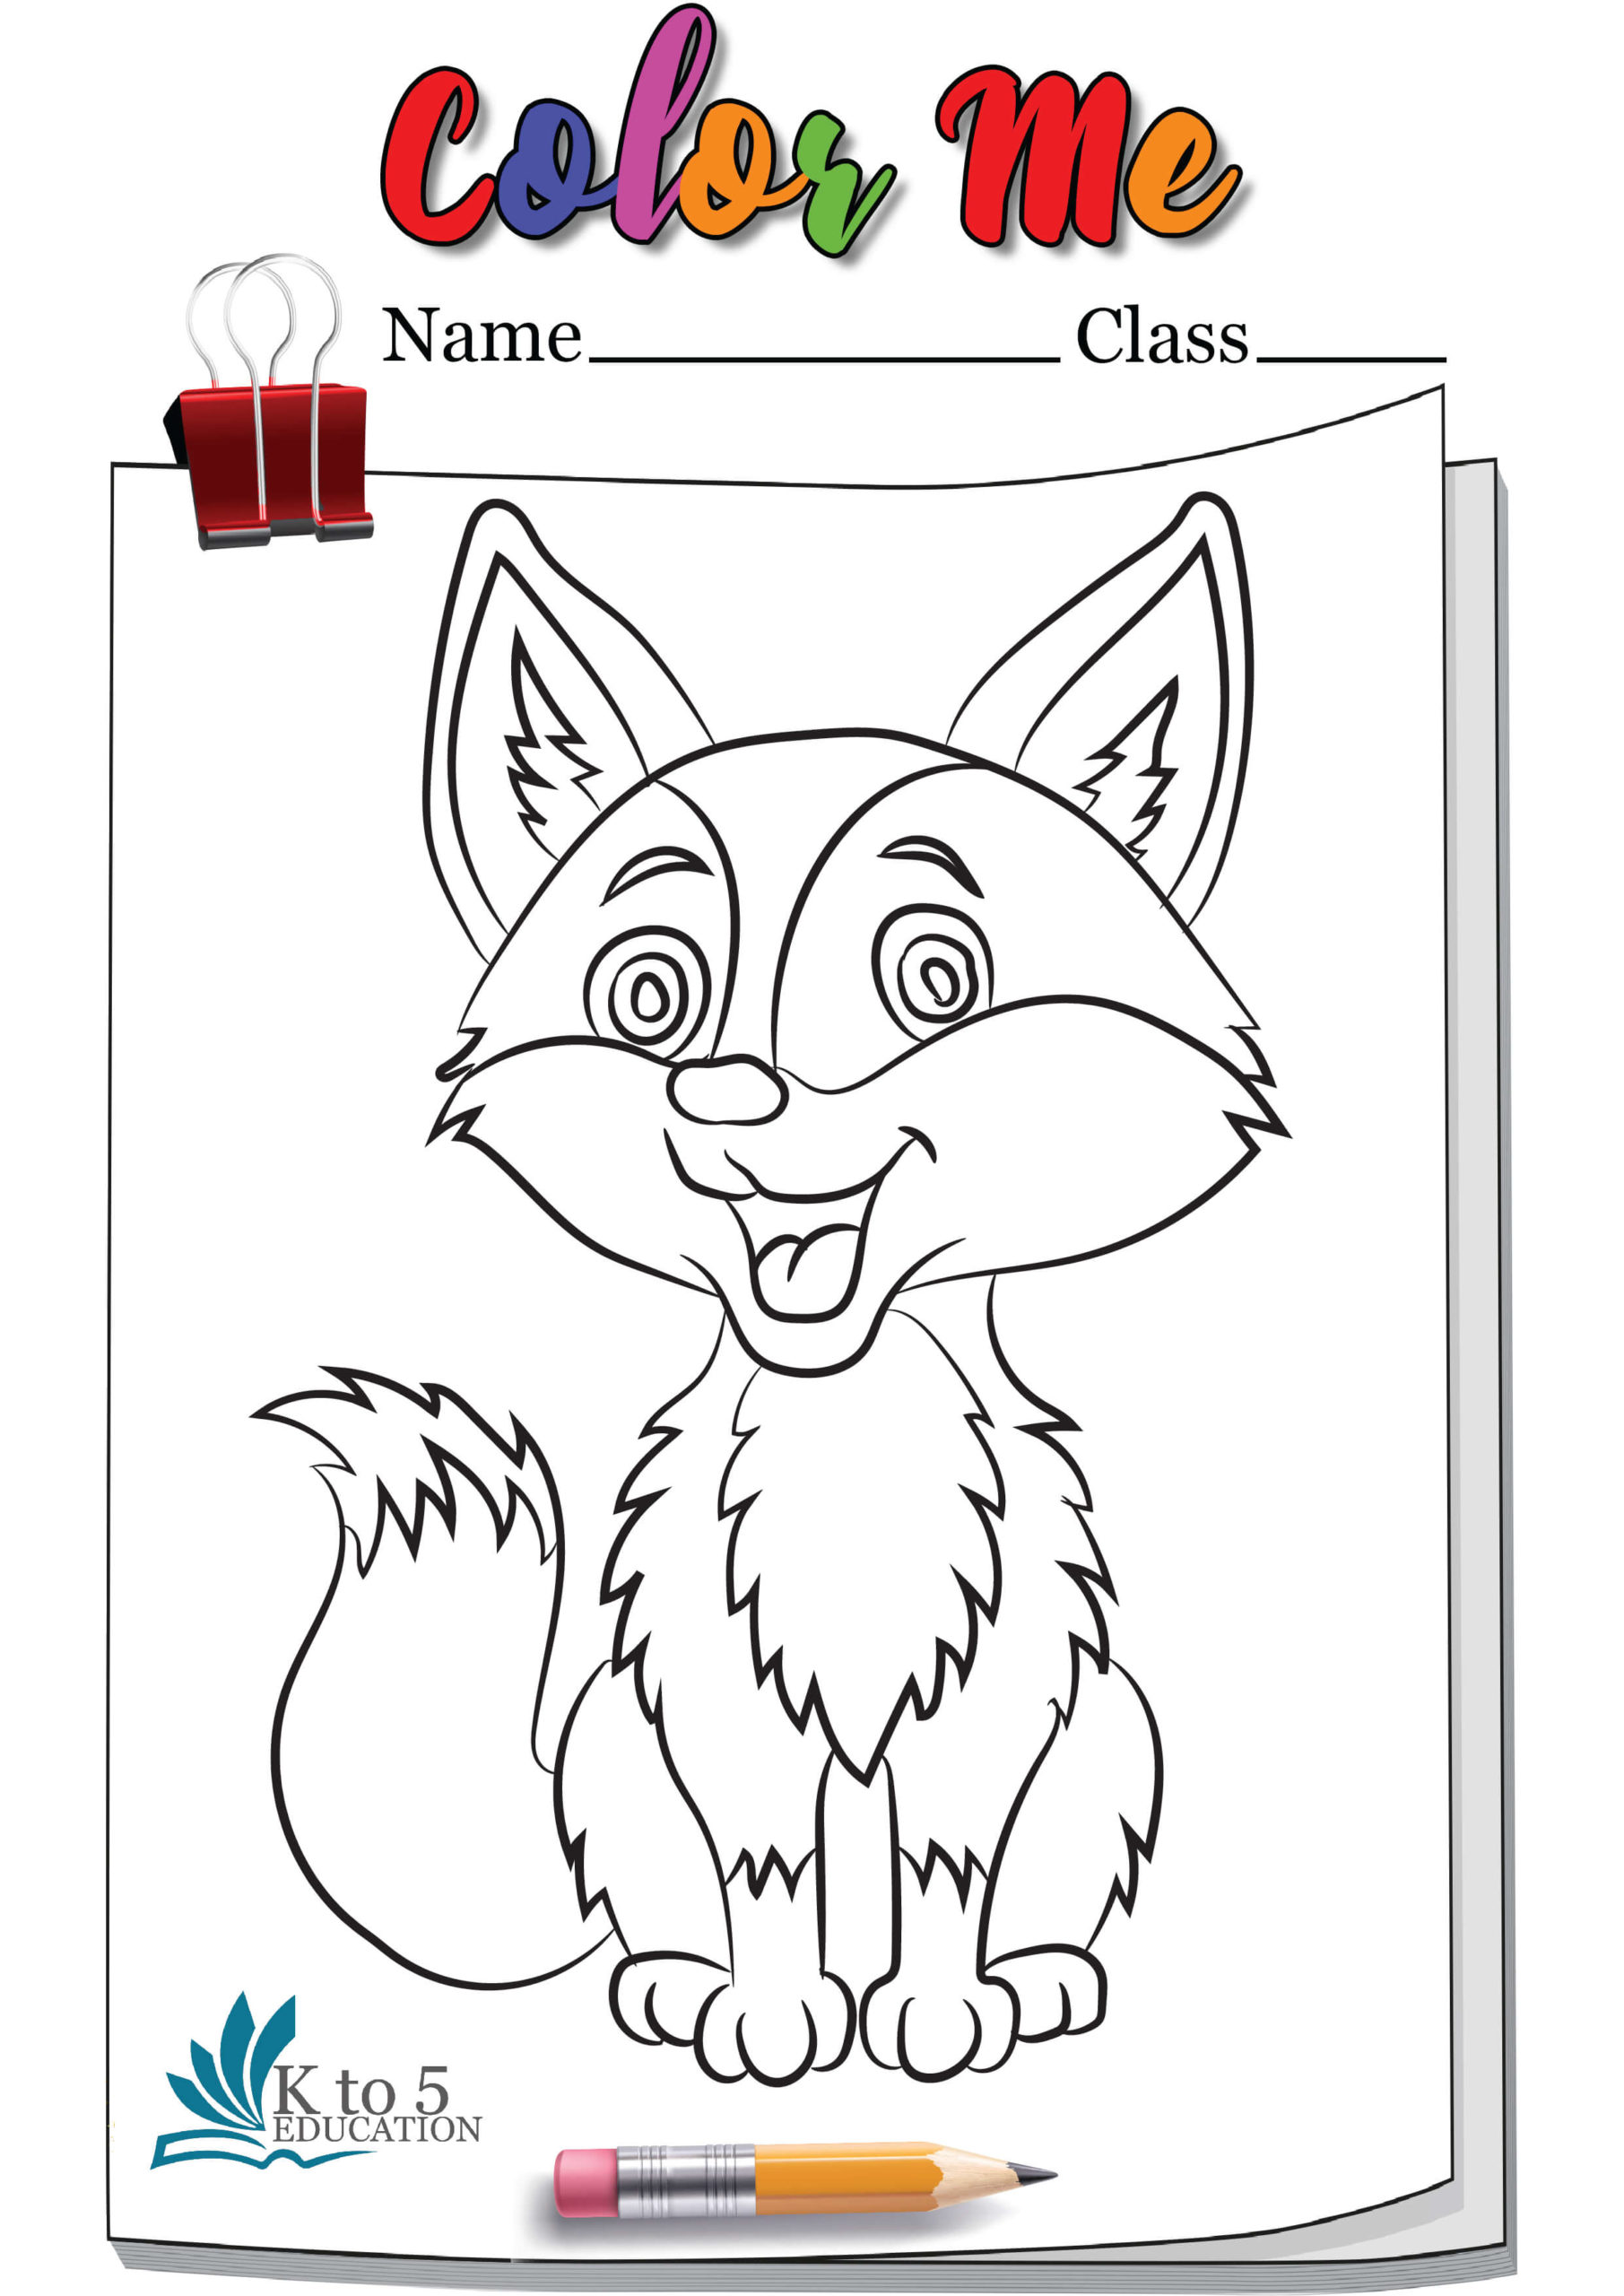 Smiling Fox coloring page worksheet